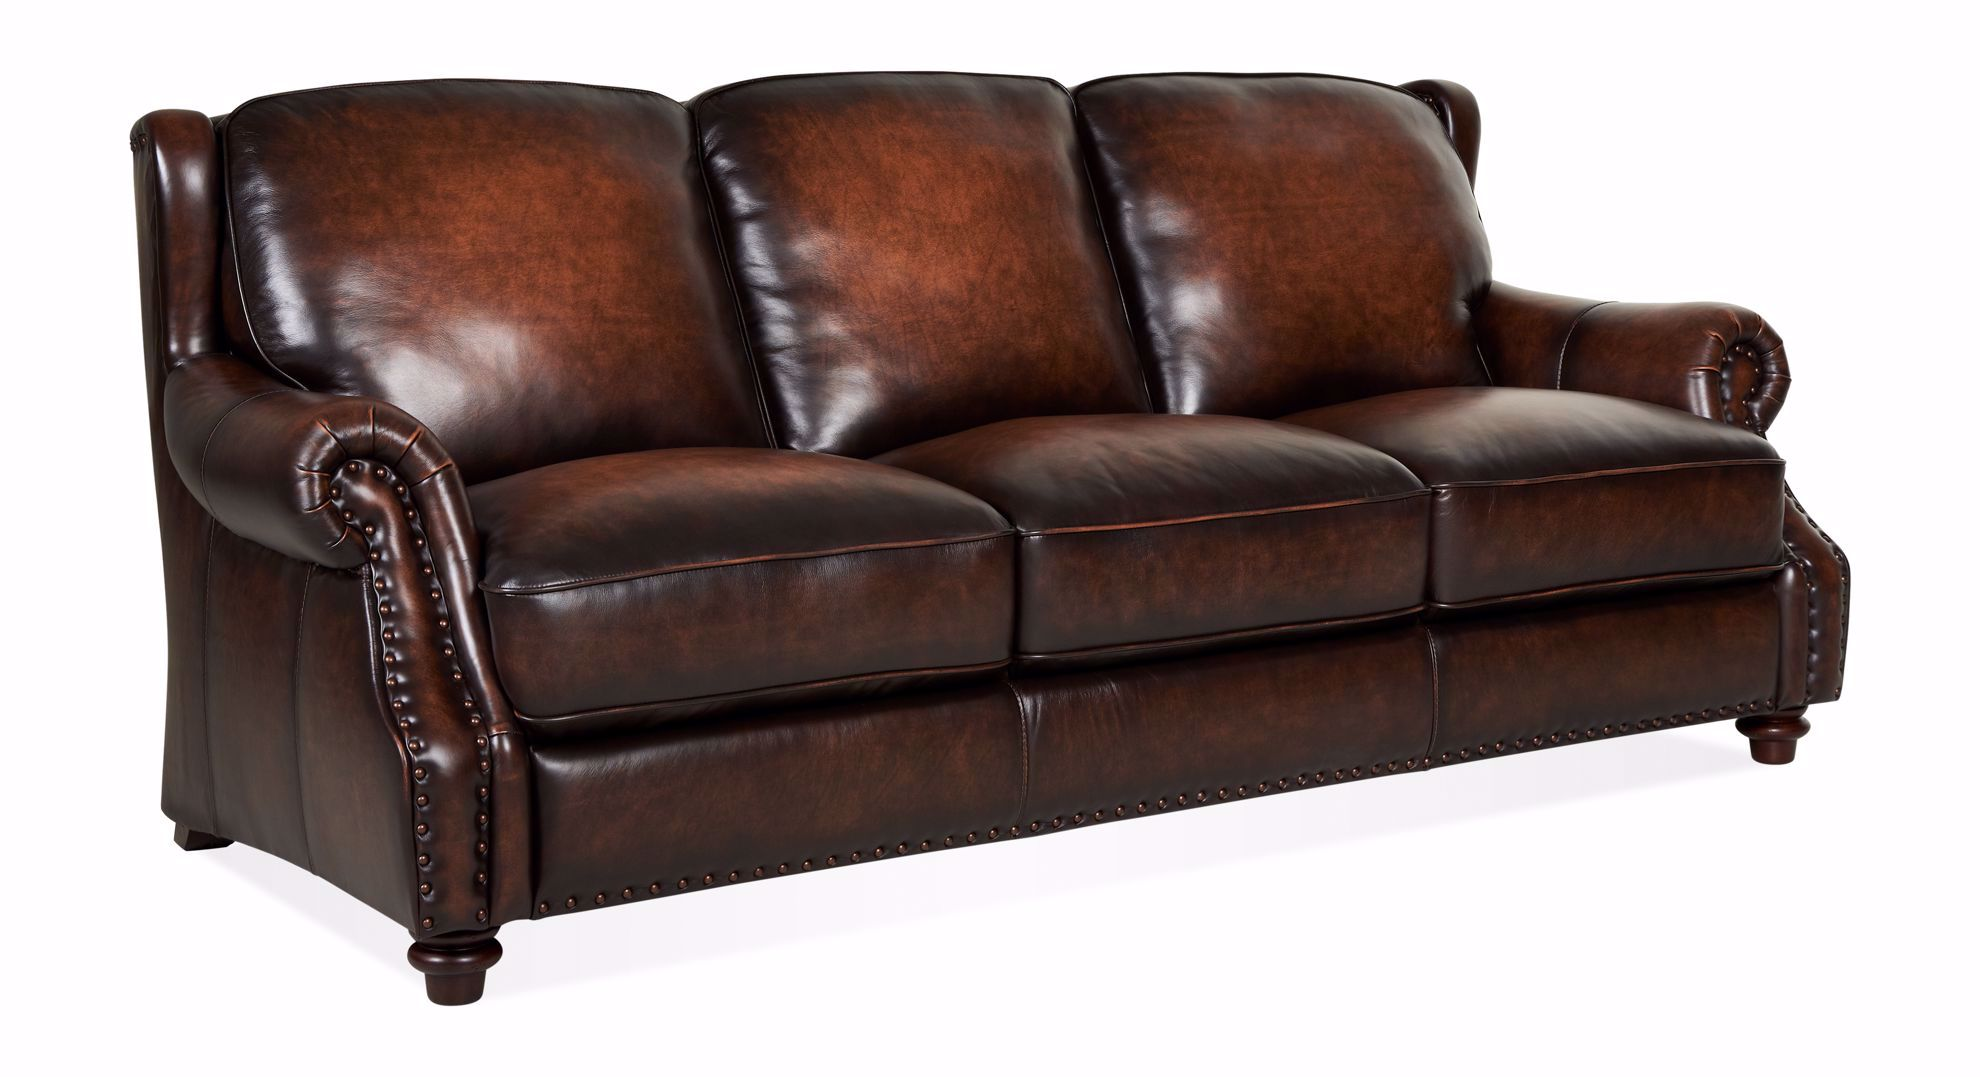 Picture of Hillsboro Bomber Jacket Sofa